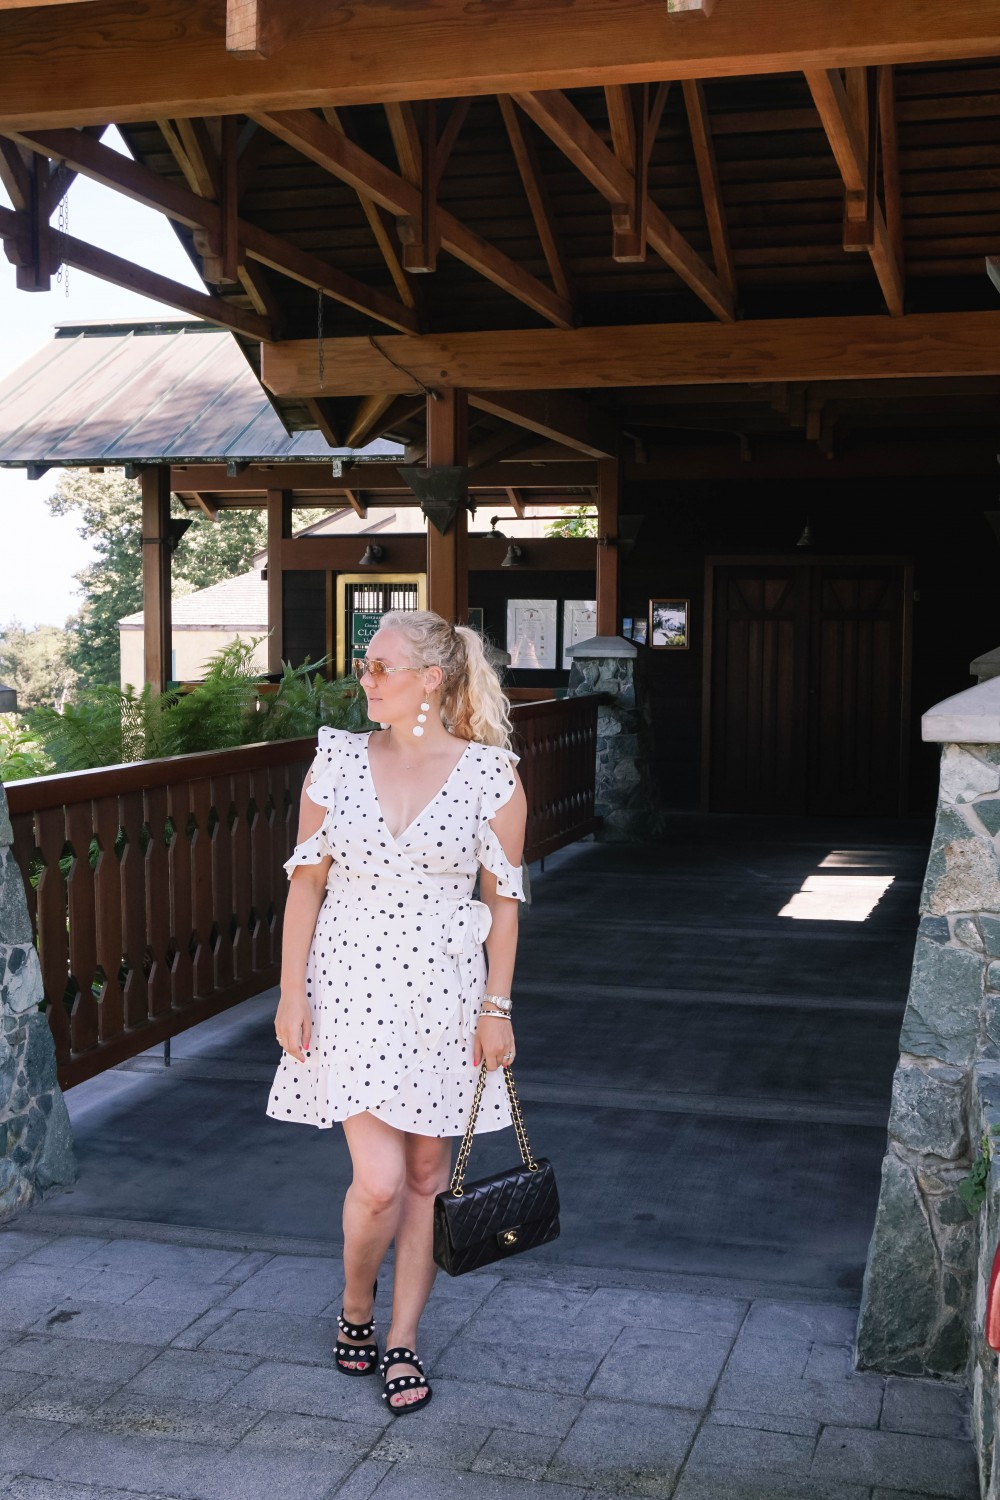 Three Ways to Wear Polka Dots-Polka Dot Outfits-Outfit Inspiration-Borrowed by Design-Polka Dot Wrap Dress-Faux Pearl Sandals-Have Need Want 8